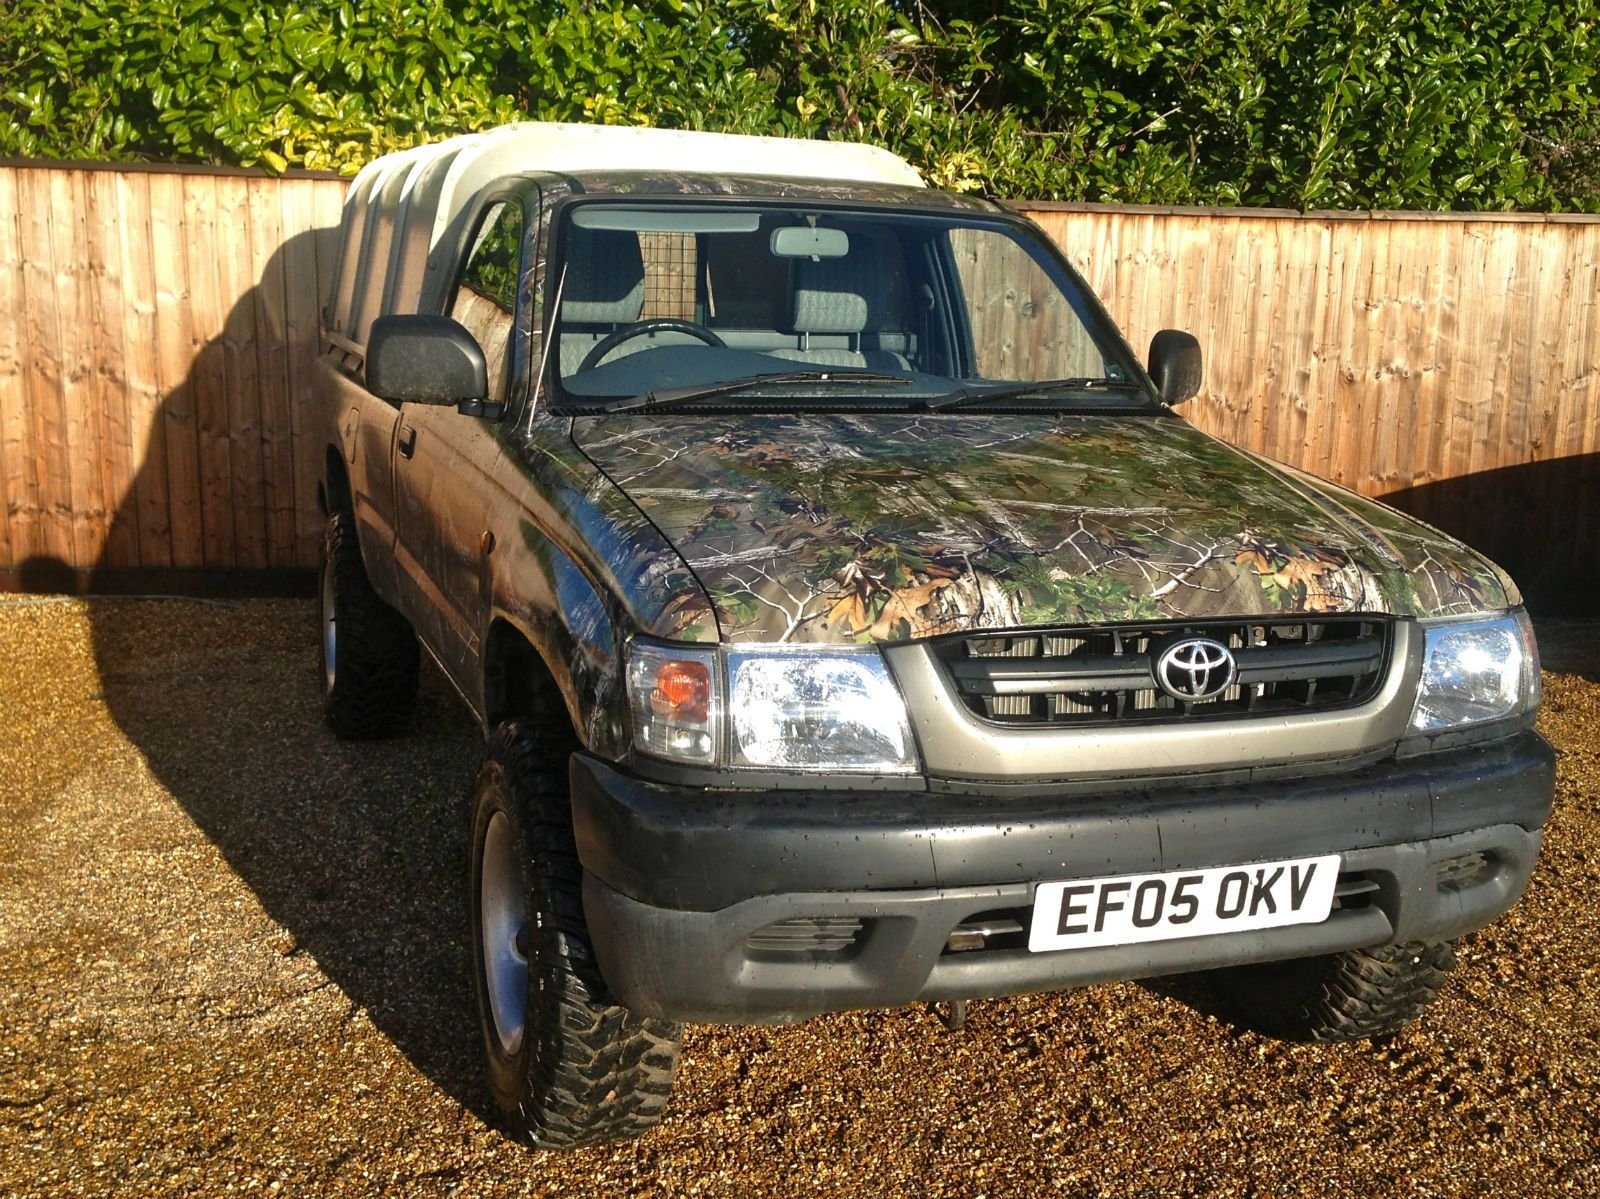 Toyota hilux ex 4x4 mwb 2 5 diesel manual 2 door truck suv camo wrapped 2005